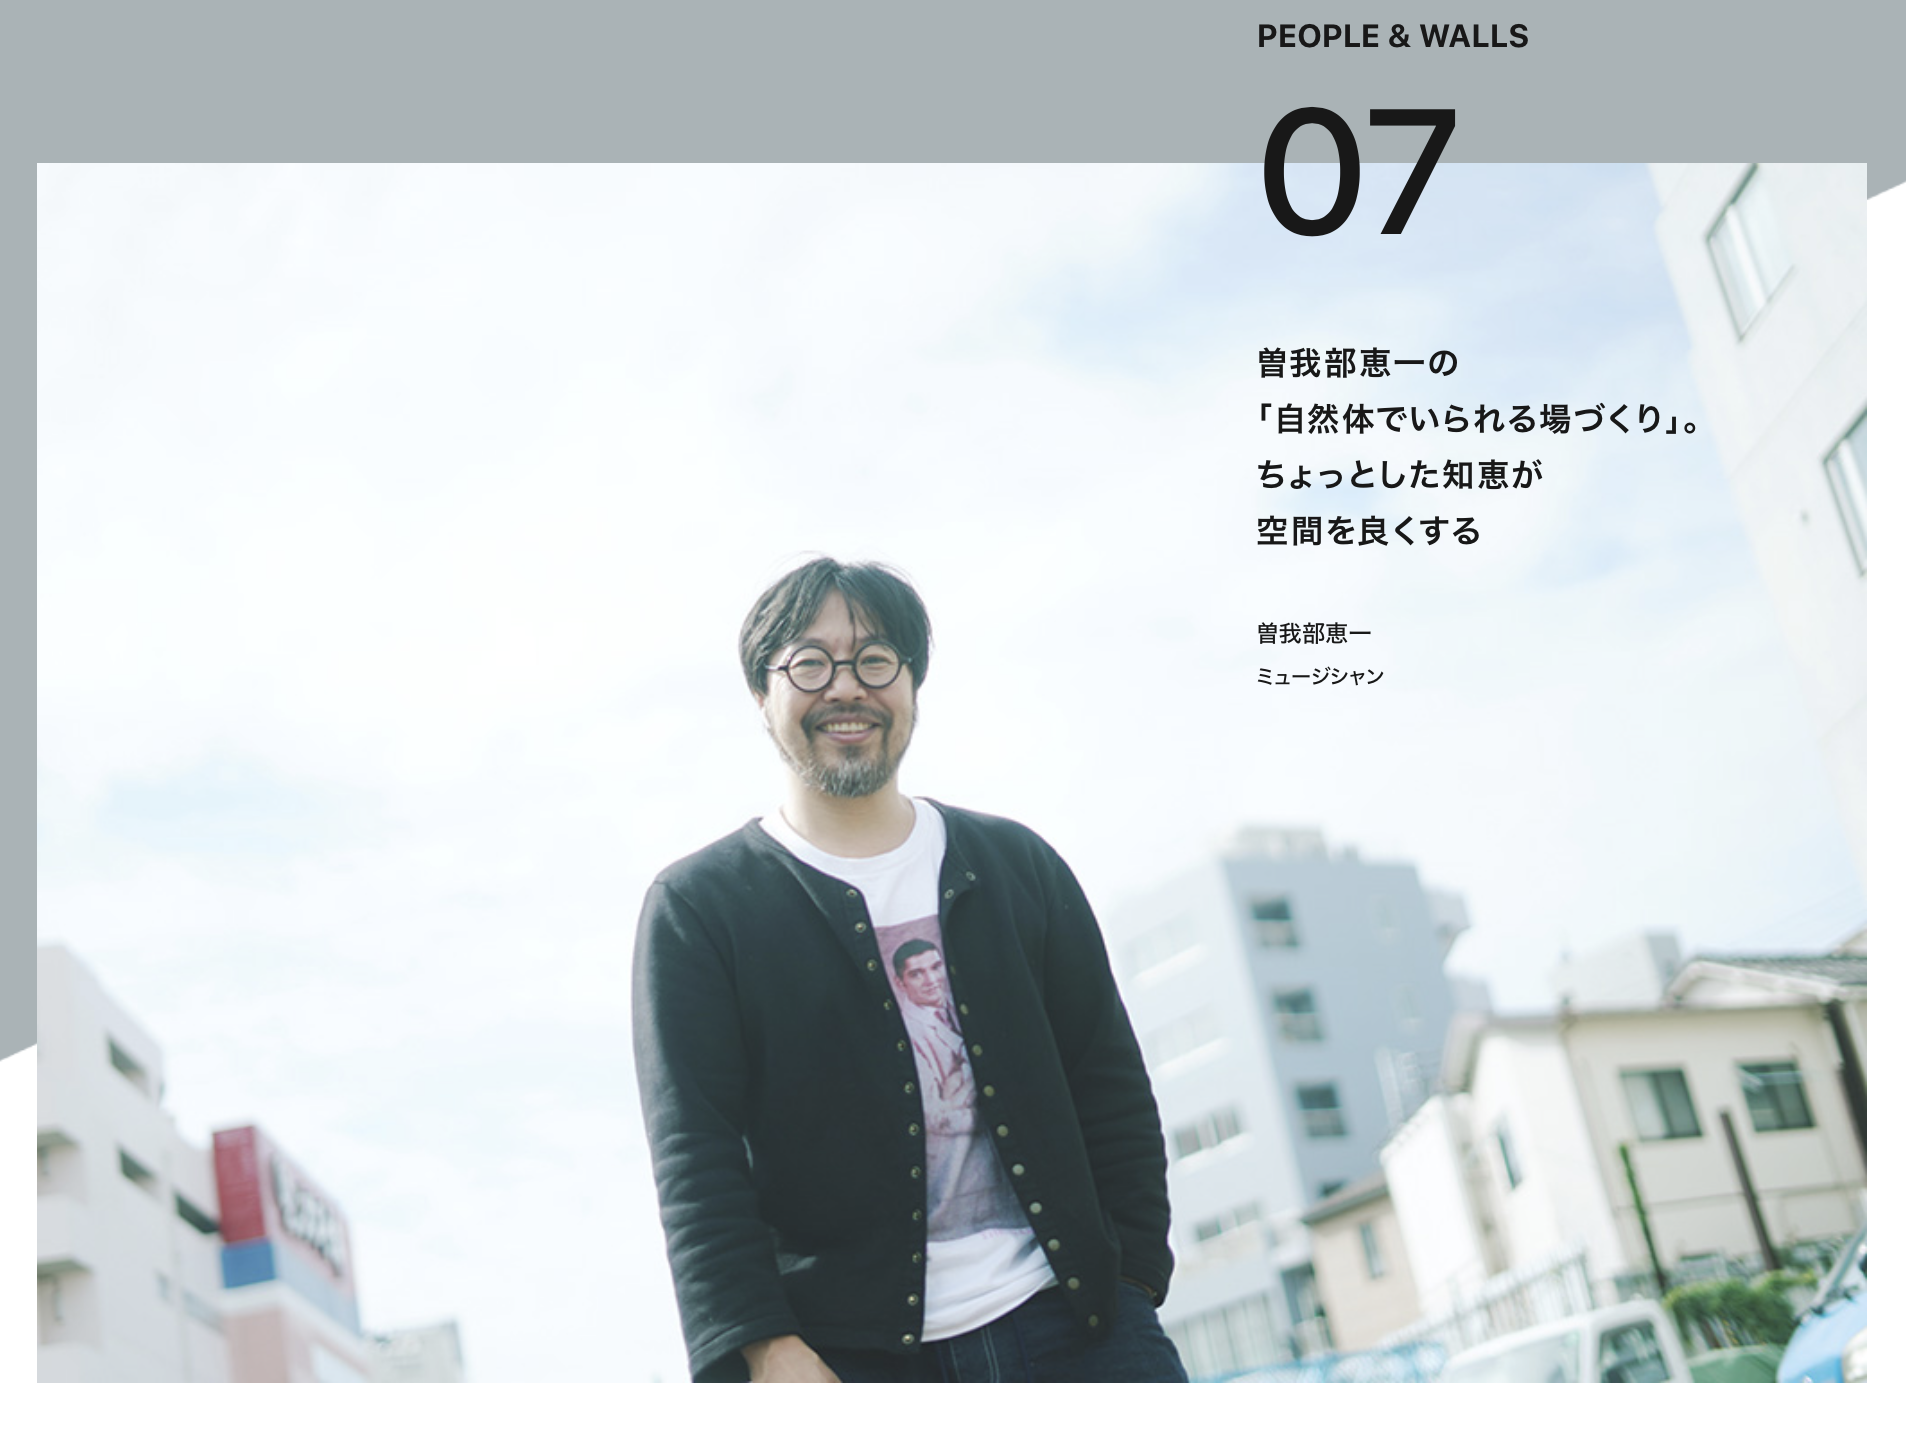 http://rose-records.jp/files/20201201170306.png